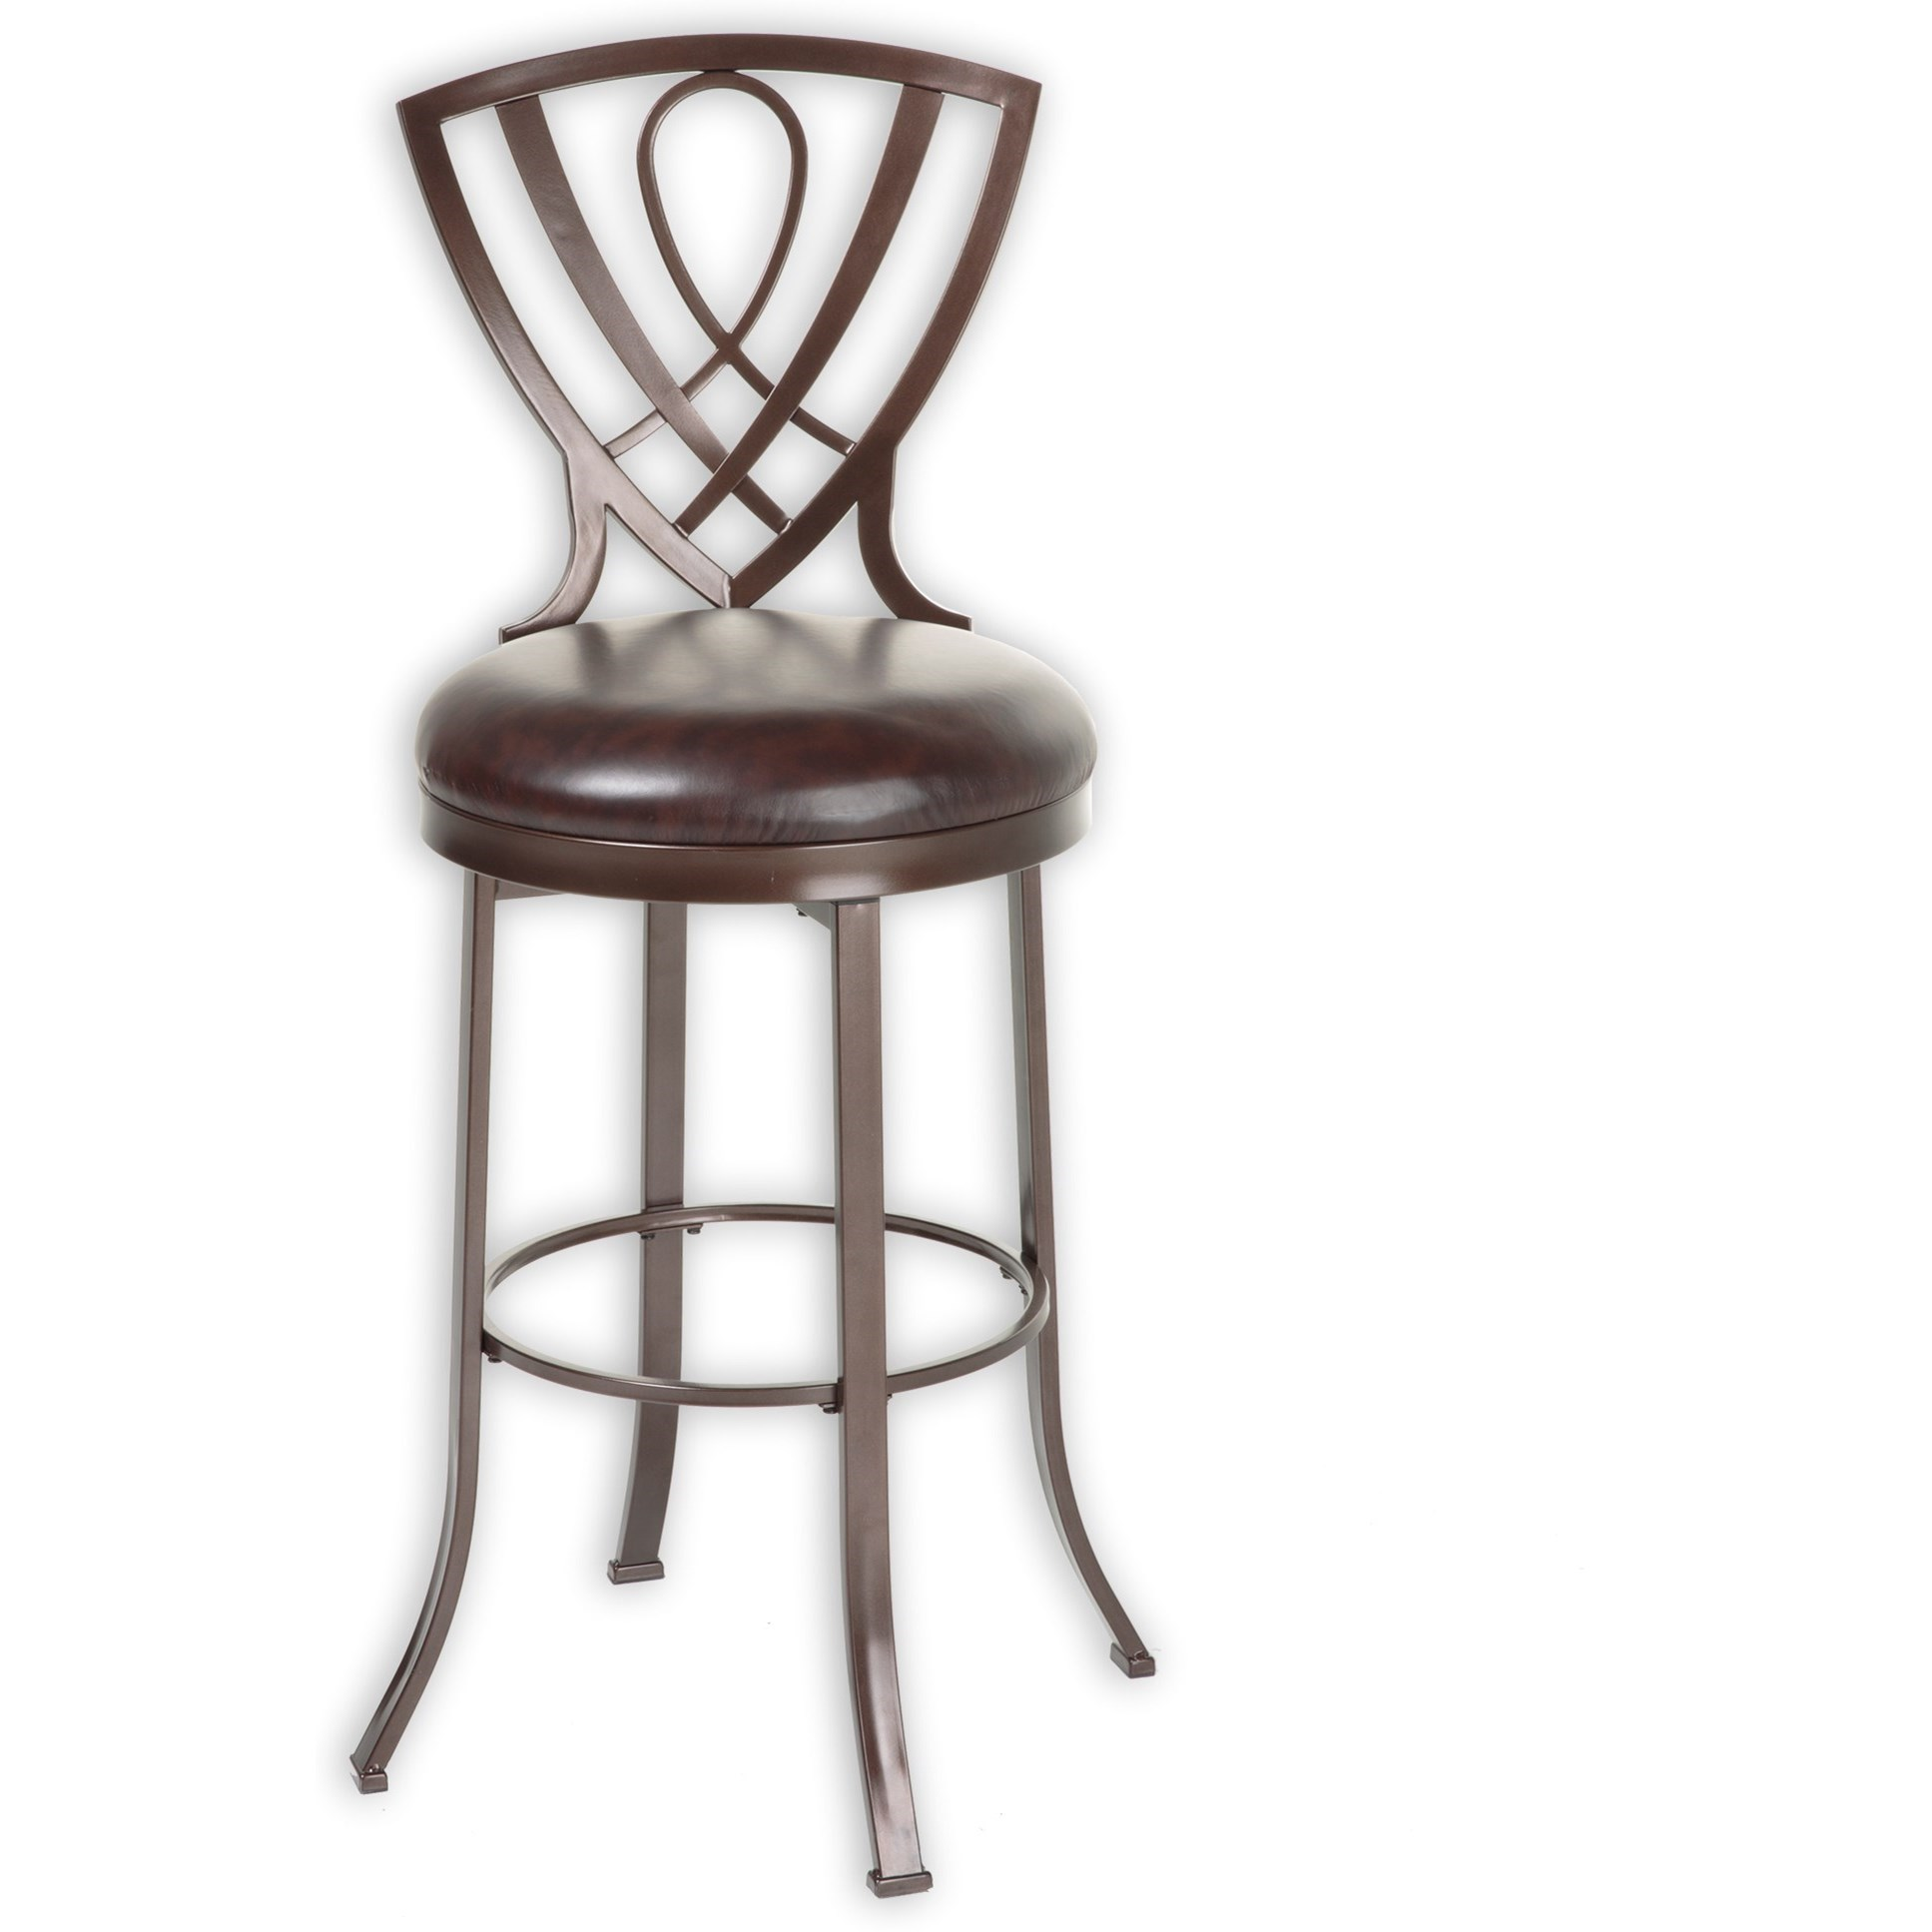 Transitional Lincoln Metal Barstool Metal Barstools By Fashion Bed Group Wilcox Furniture